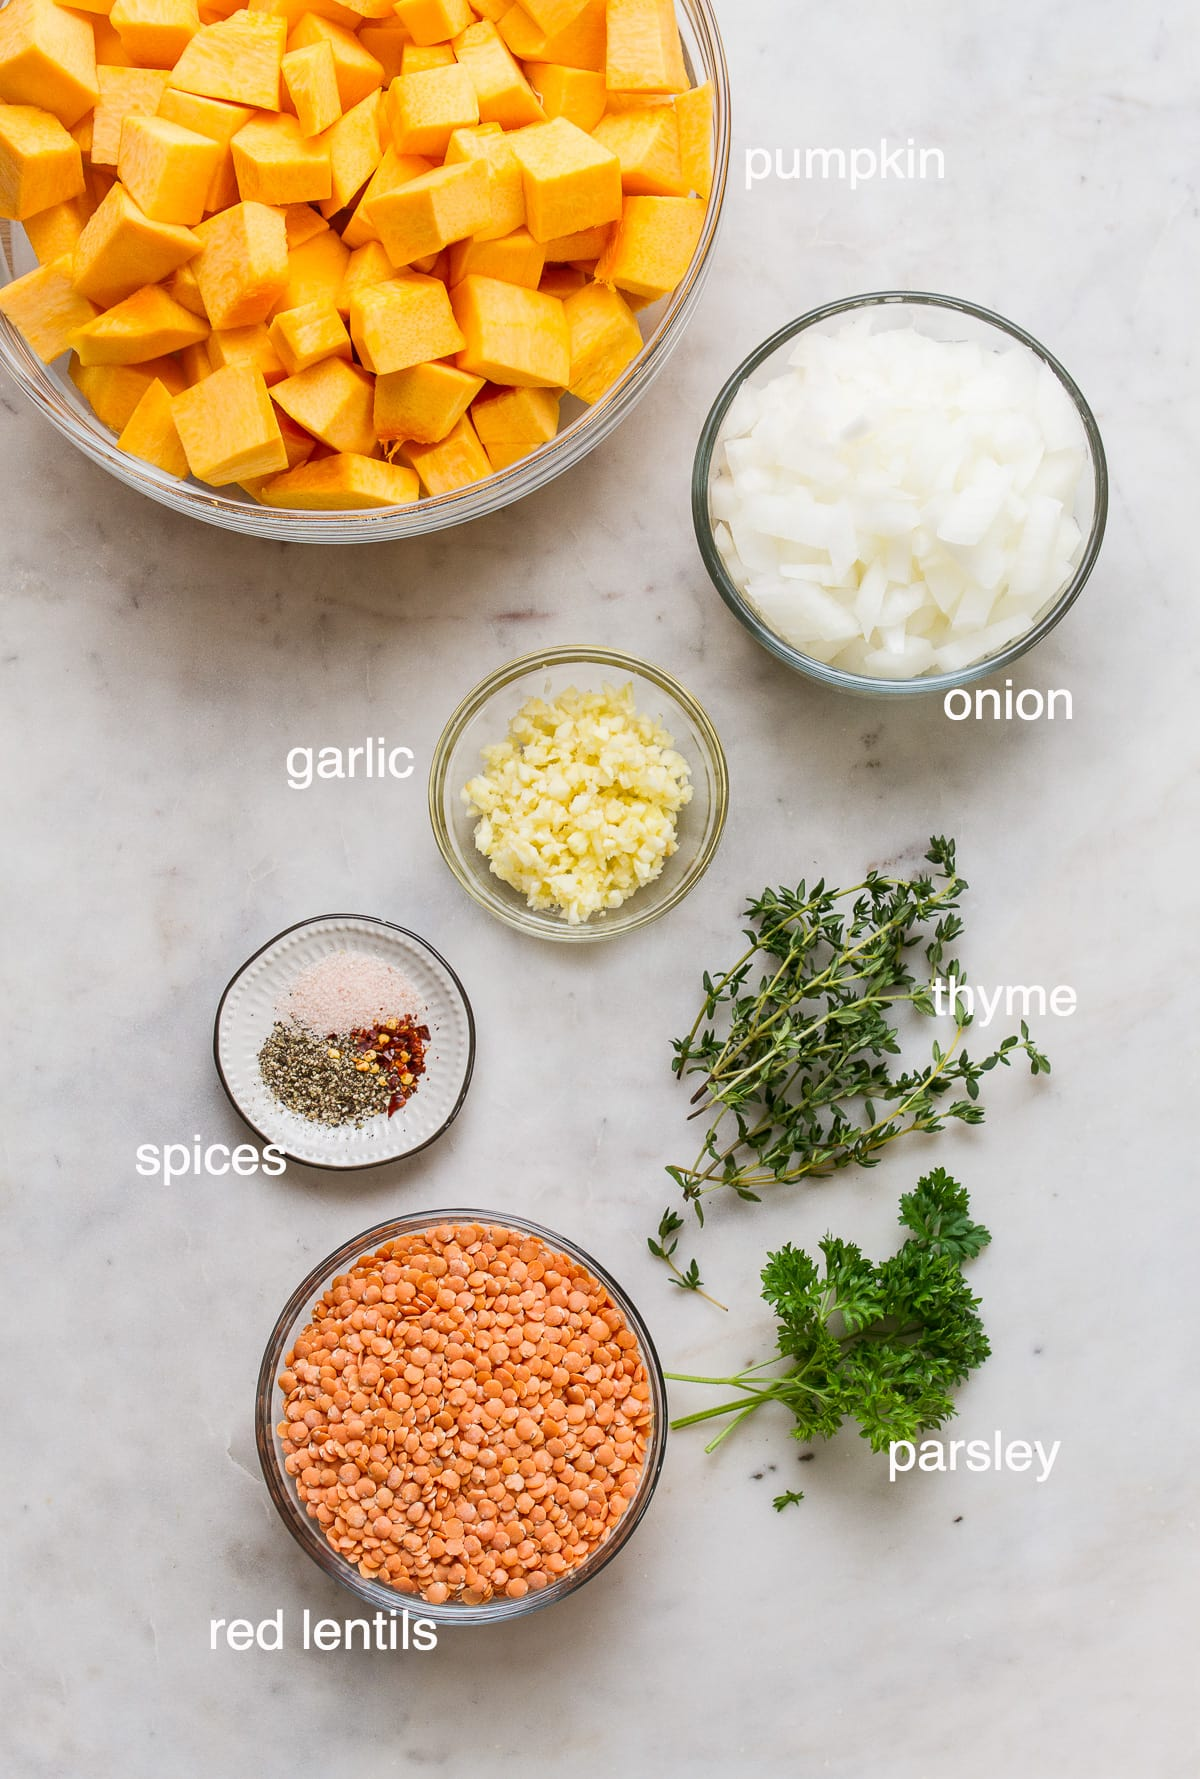 top down view of ingredients needed to make vegan pumpkin soup with red lentils.